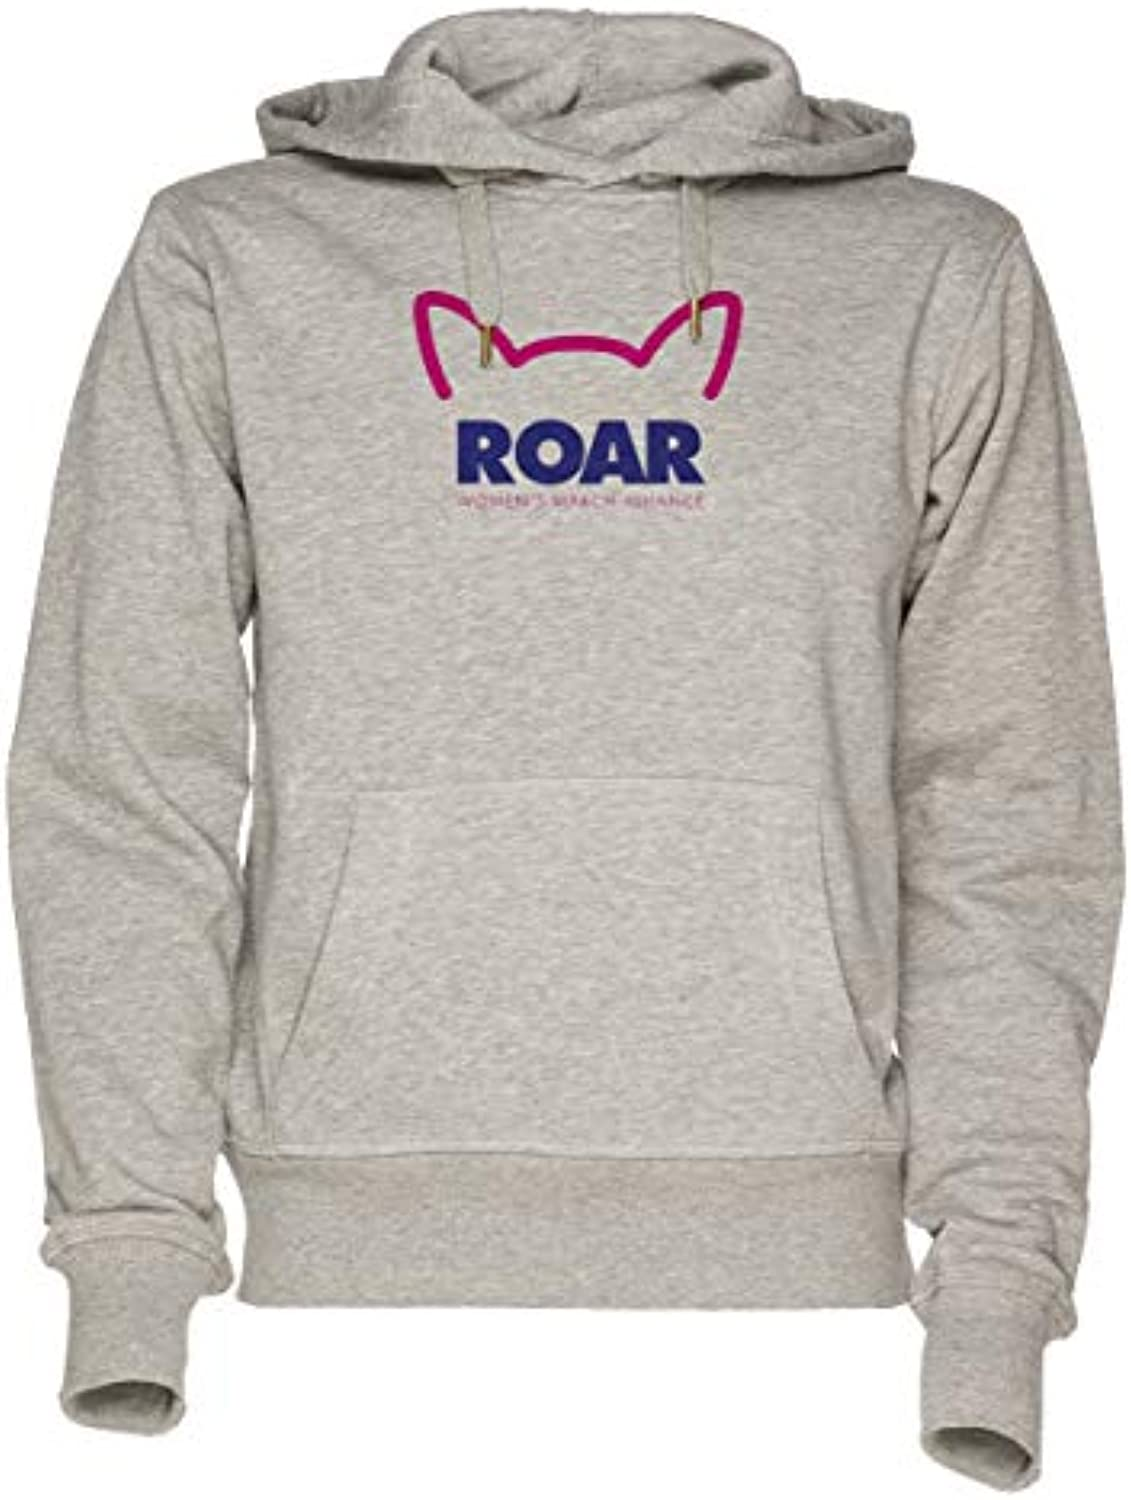 Jergley Roar Wouomo March Alliance Unisex Grigio Felpa Donna con Cappuccio  Uomo Donna Felpa Hoodie for f52c53af9a25